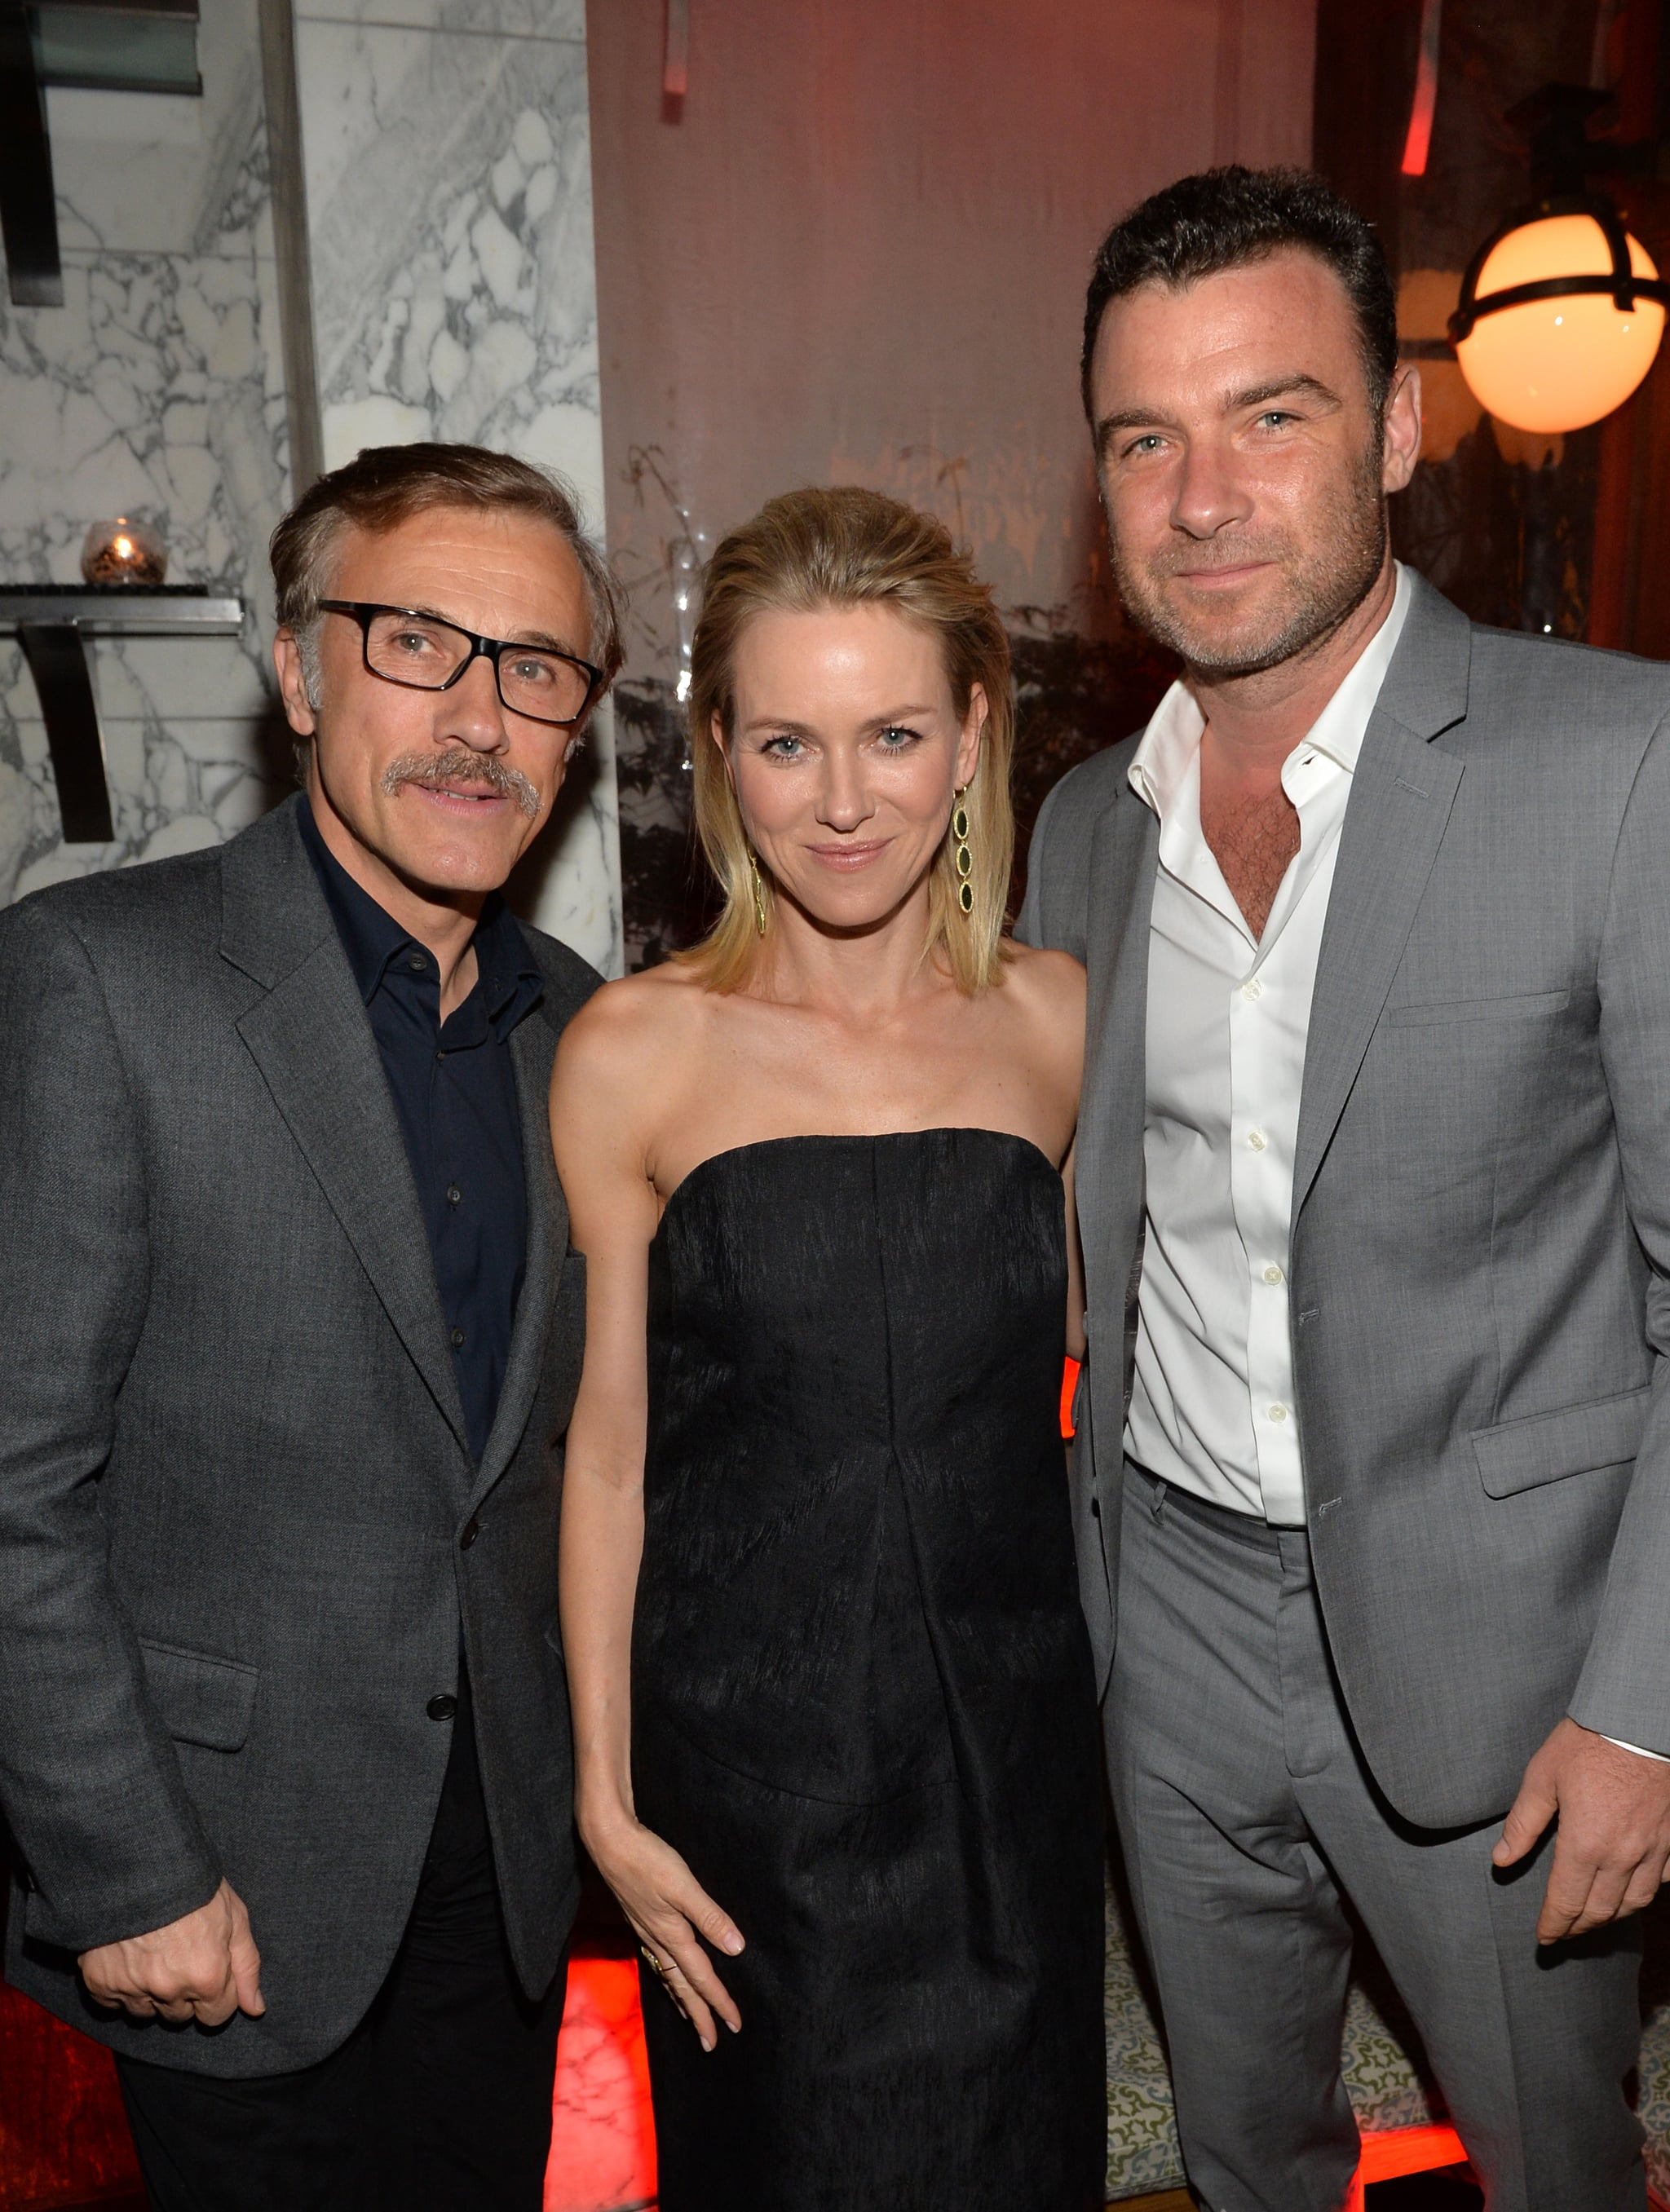 Liev and Naomi hung out with Christoph Waltz.